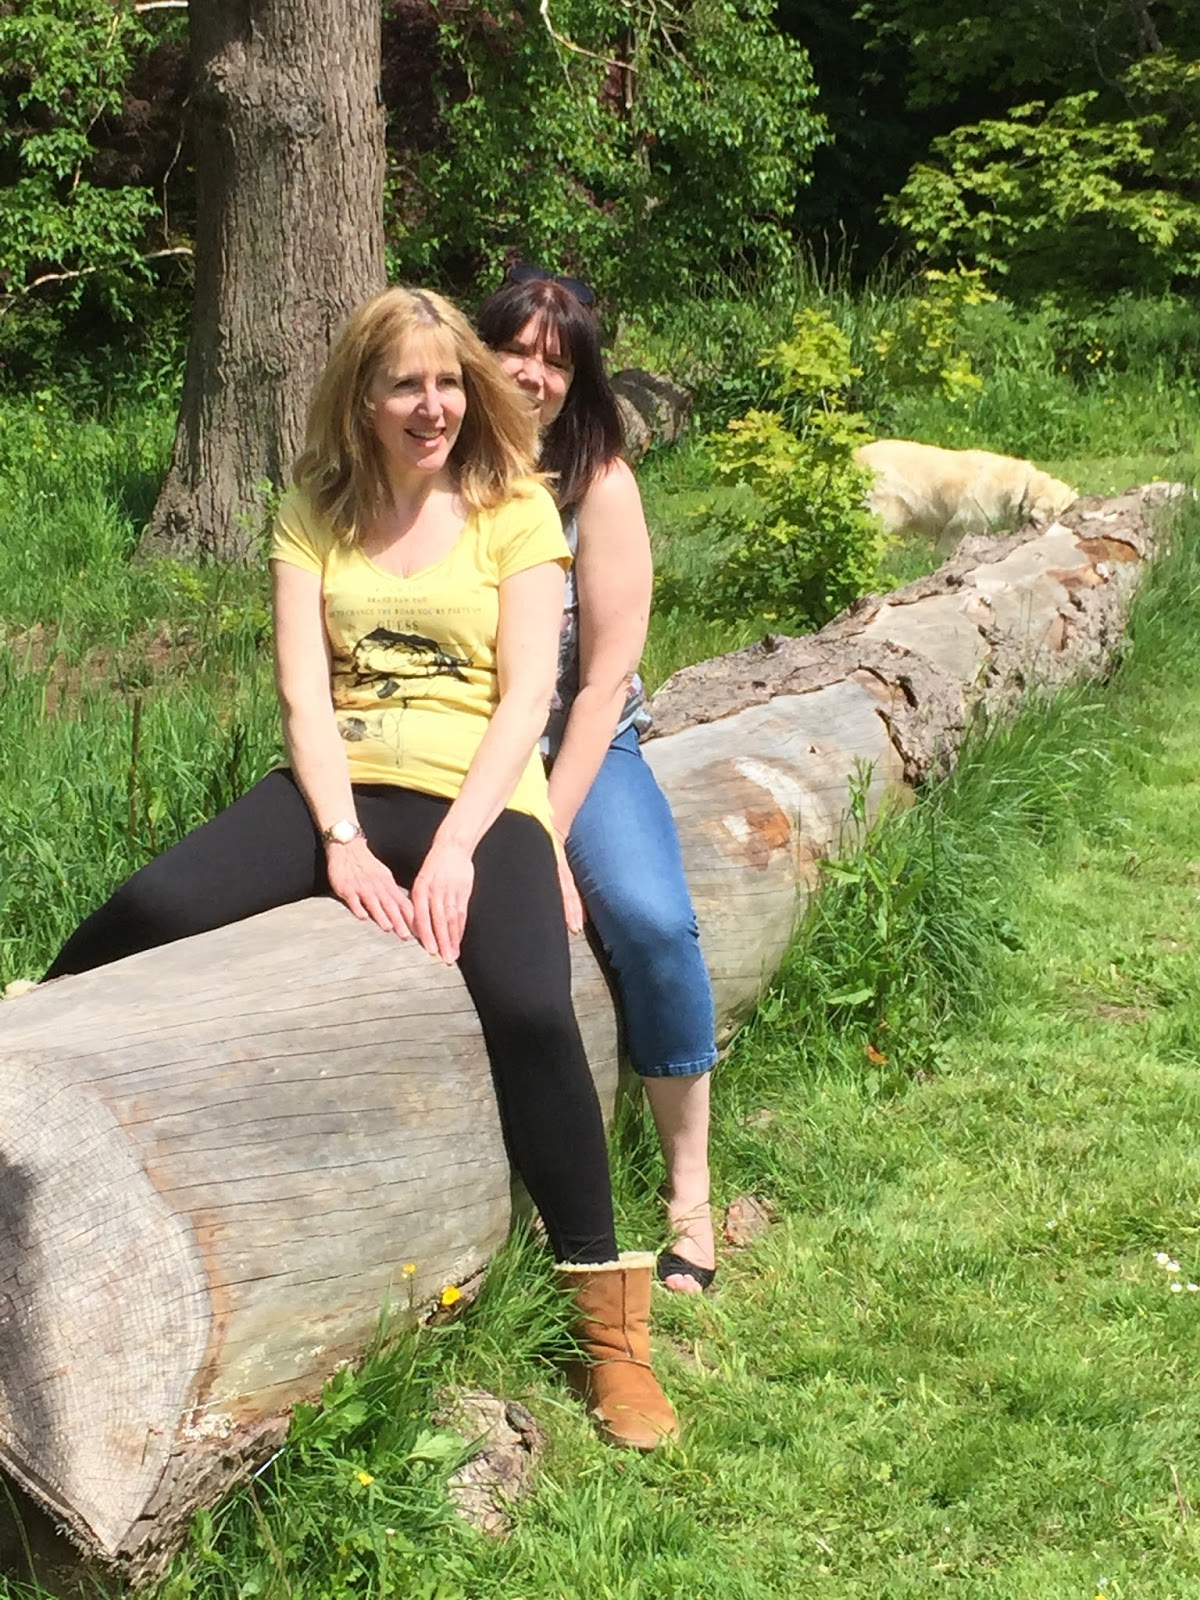 Linda & Sarah on a log at National Trust Dyffryn Gardens